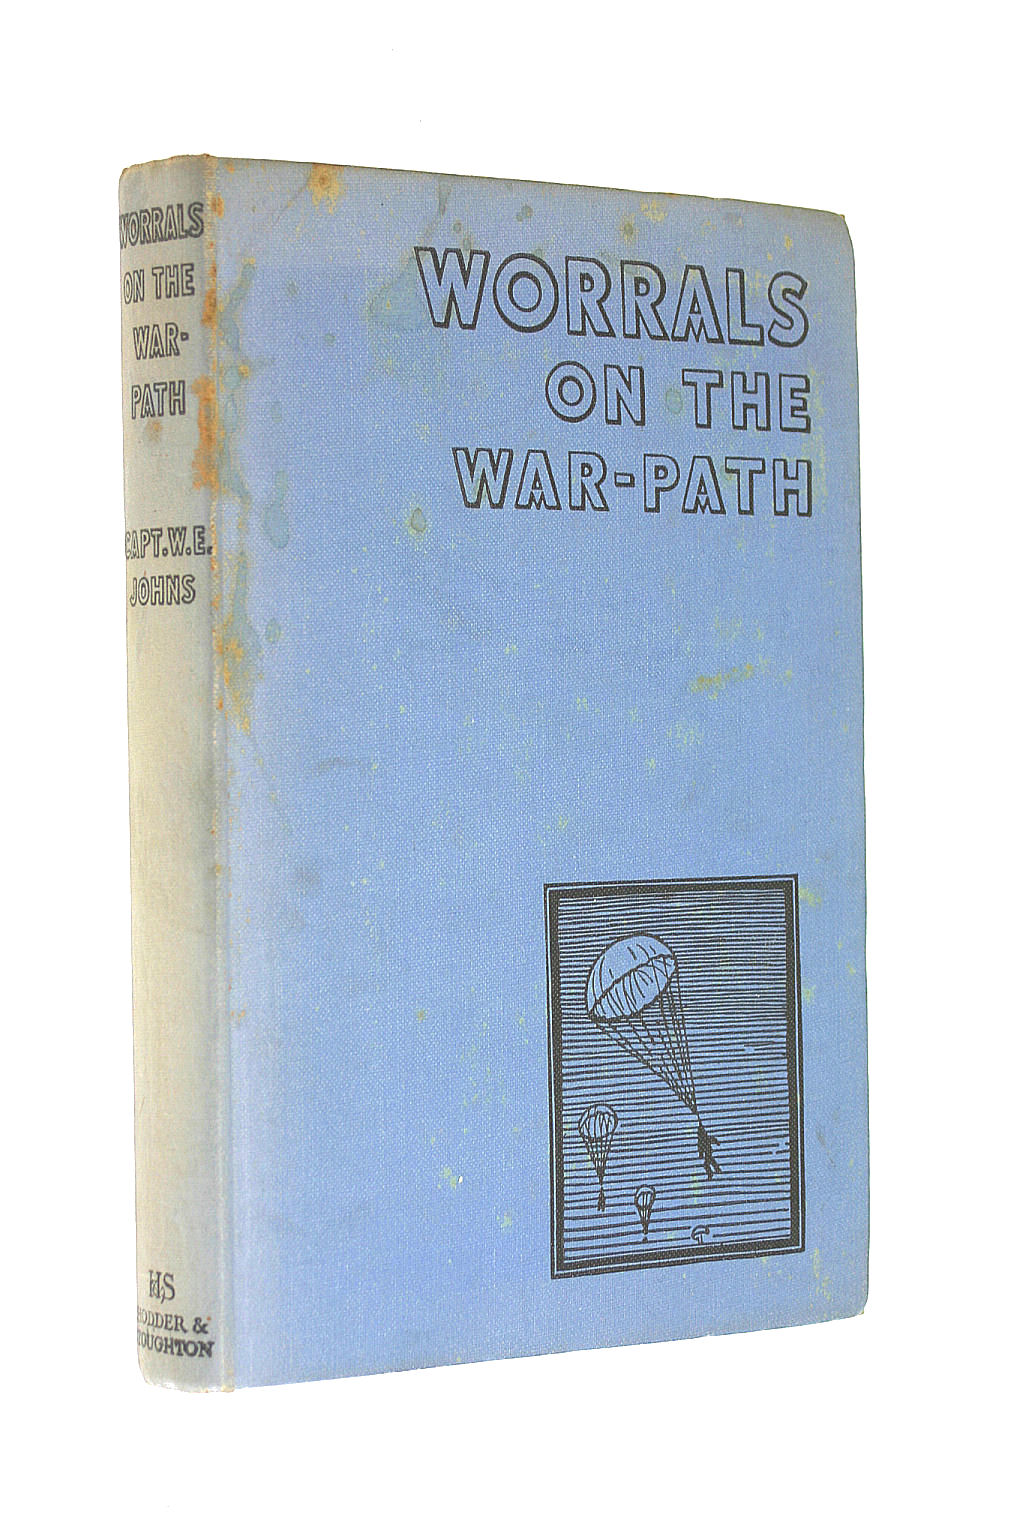 Image for Worrals on the War-Path, a Worrals of the WAAF Story